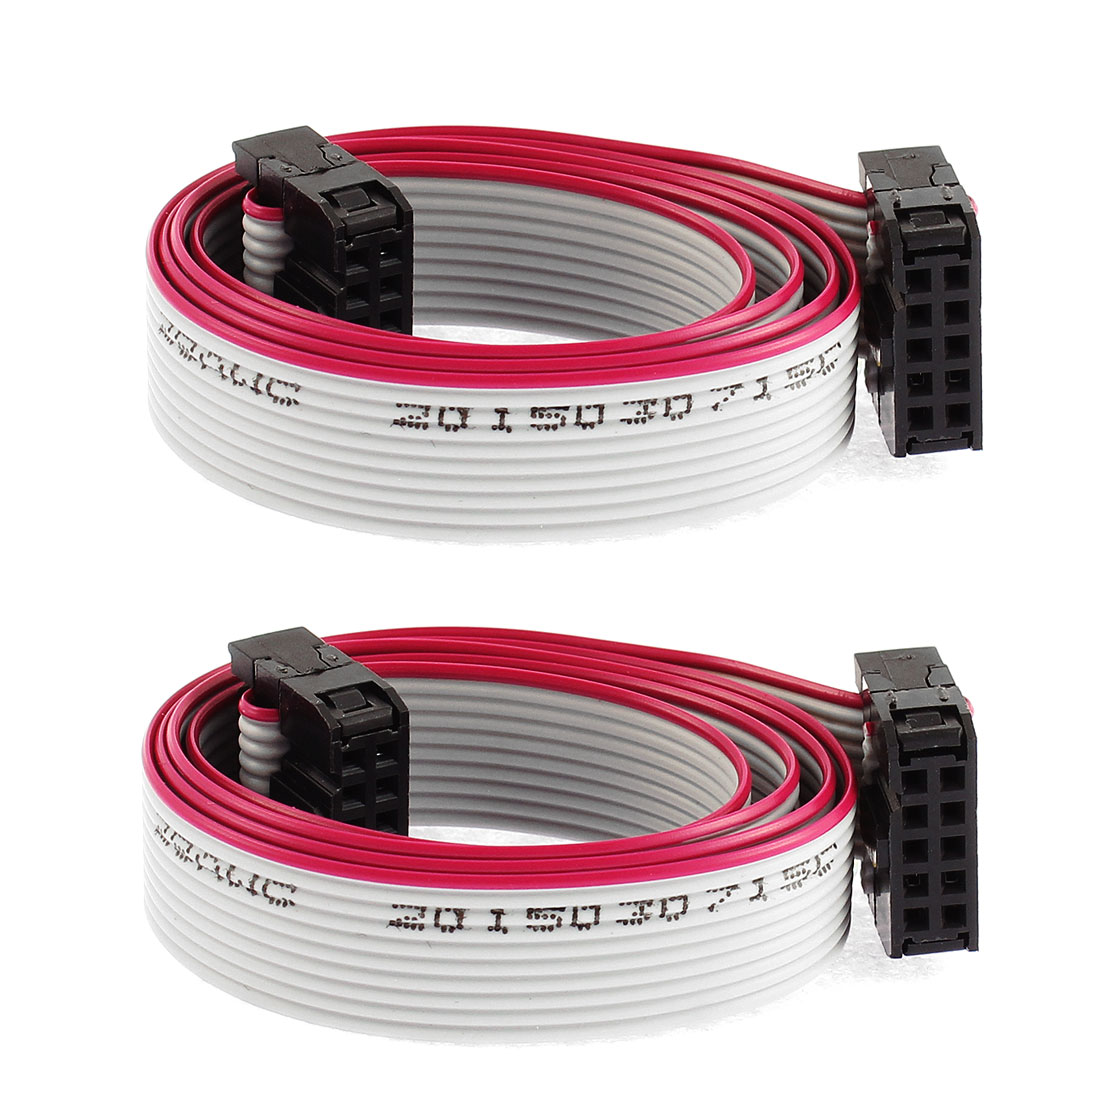 2 Pcs 10 Pin 10 Wire IDC Socket Flat Ribbon Cable 50cm Long